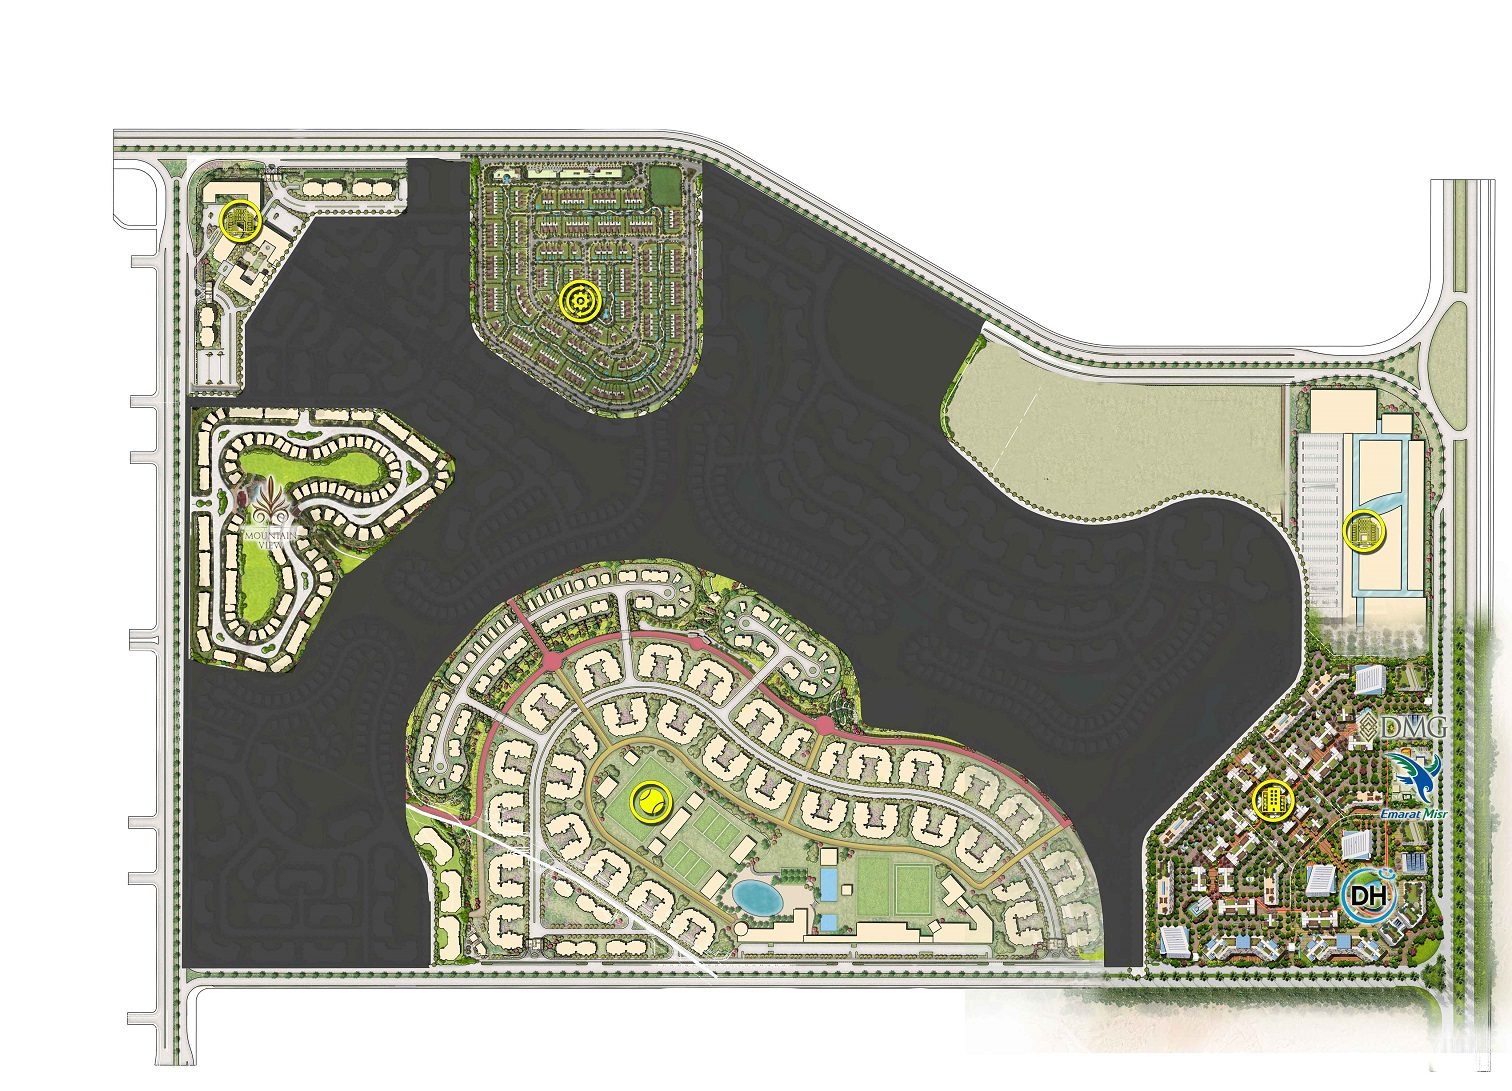 Mountain-View-Icity-New-Cairo-Master-Plan